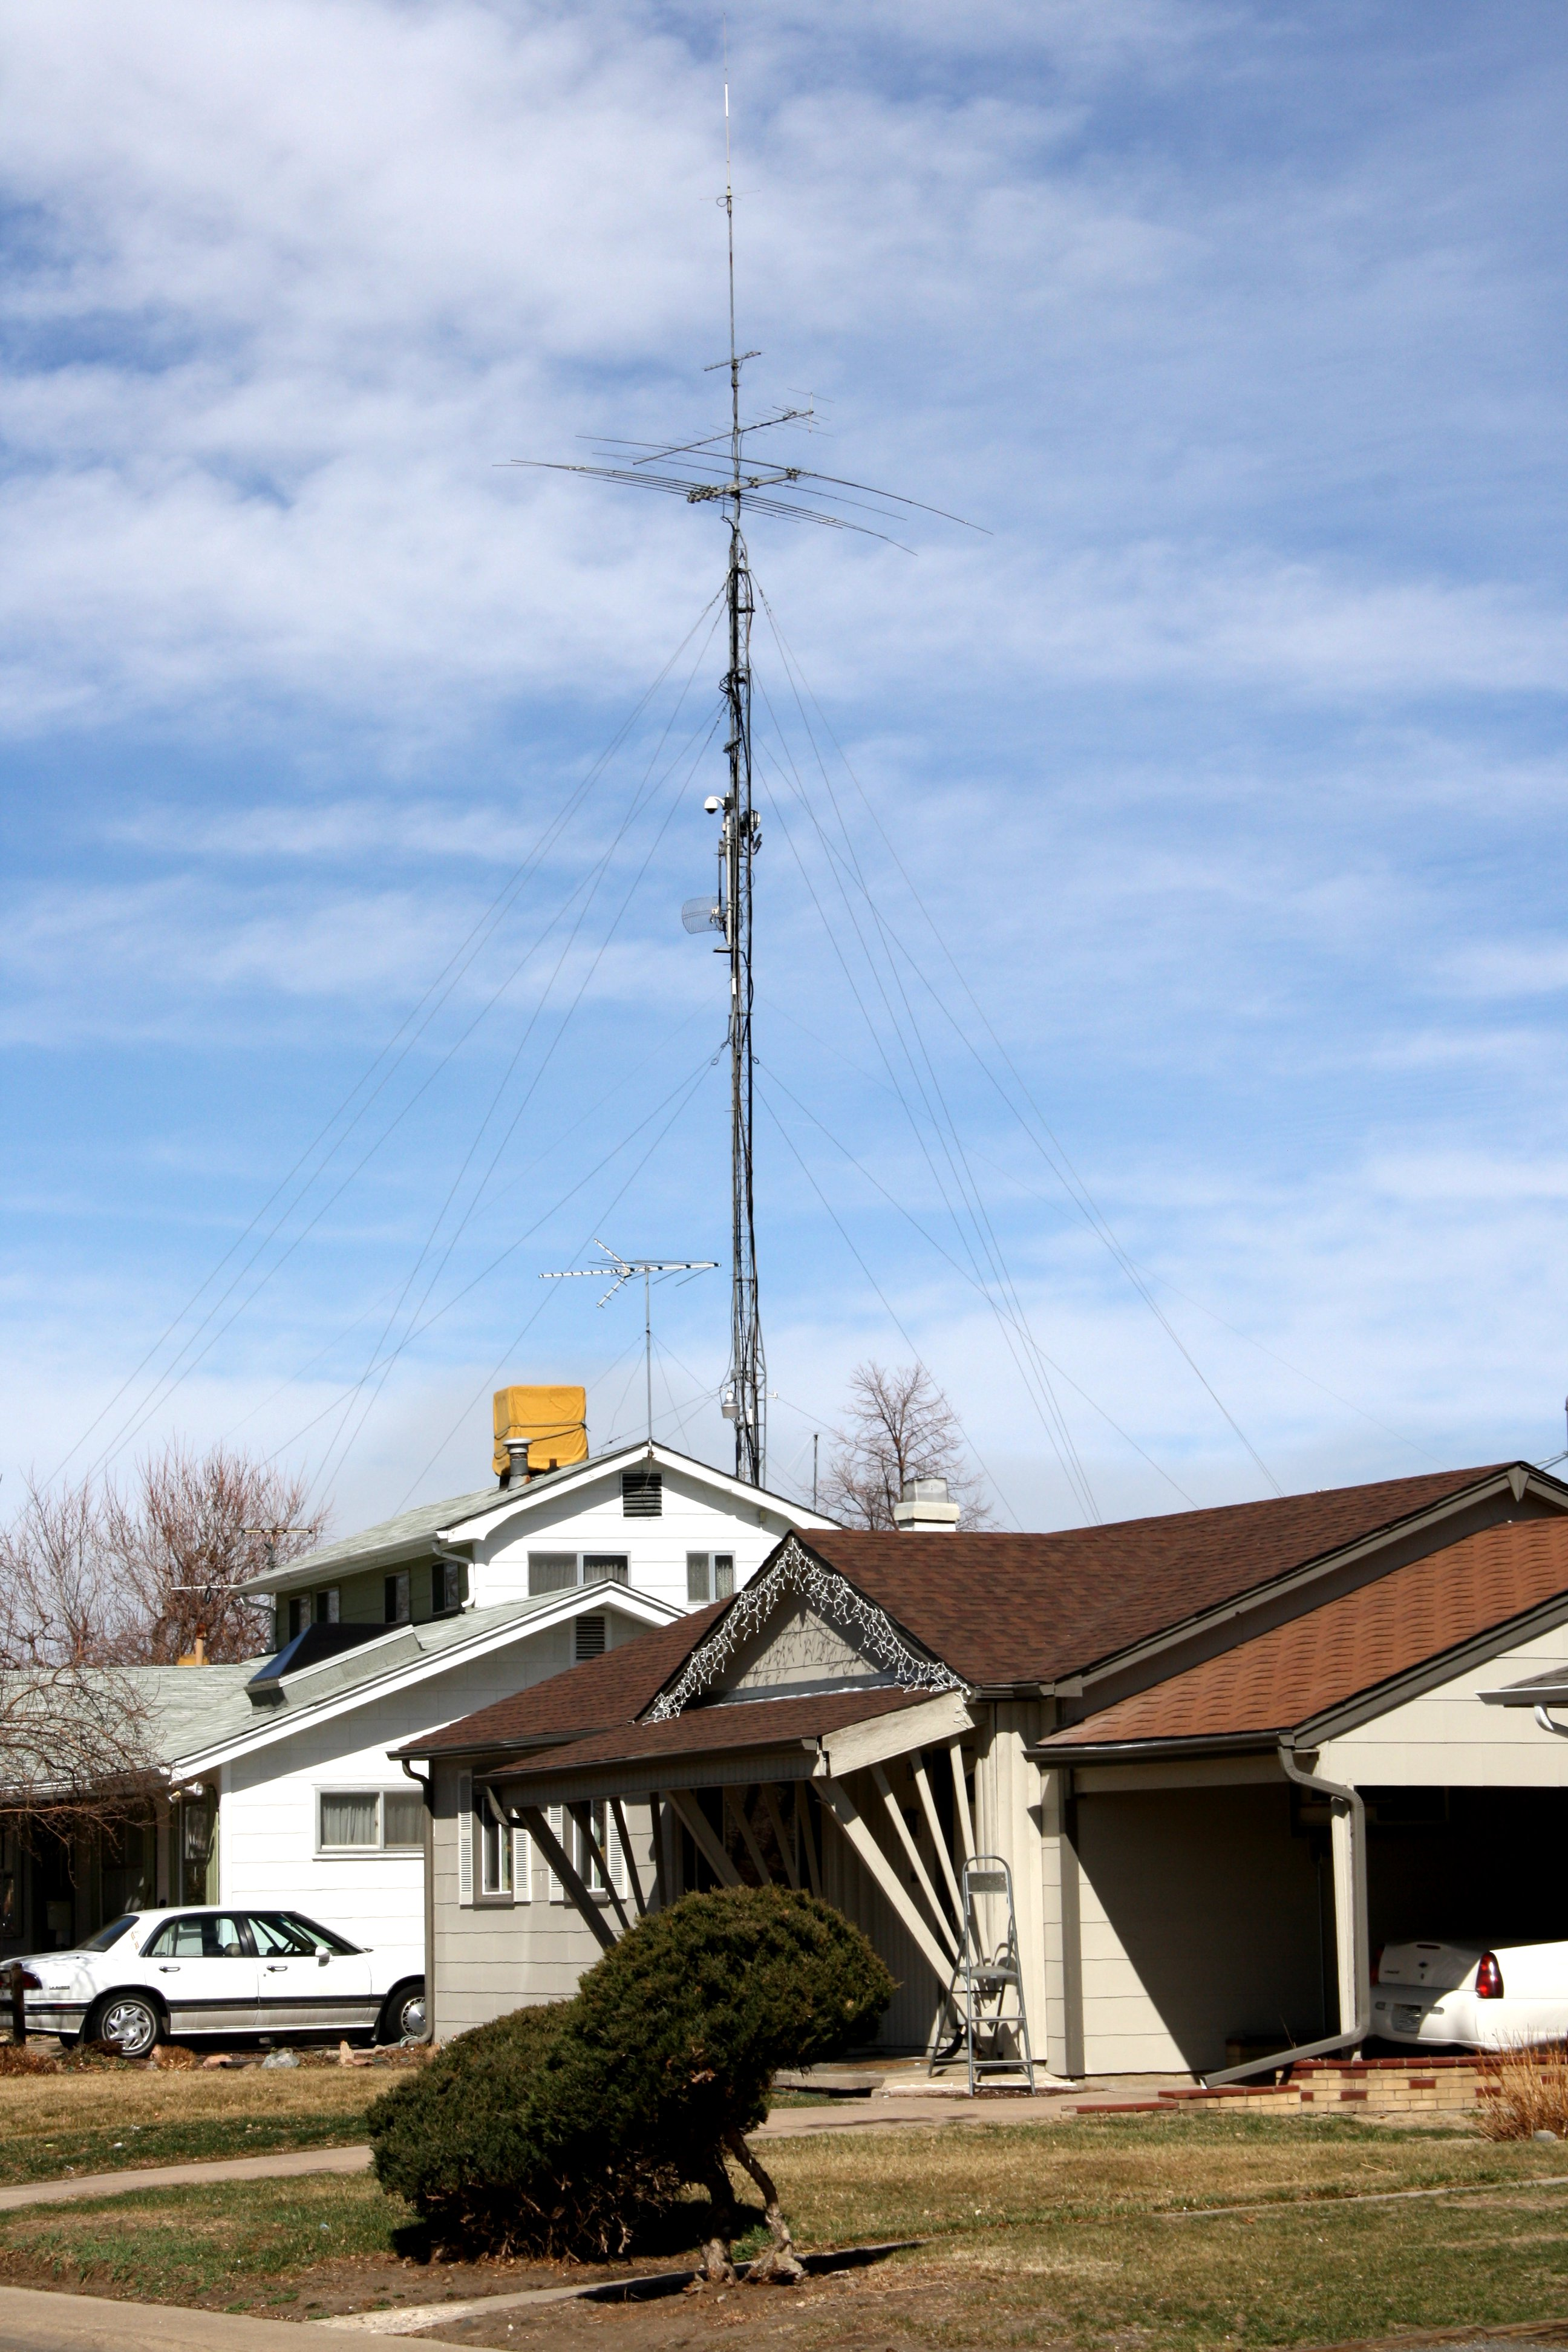 House with Giant Antenna Picture | Free Photograph | Photos Public